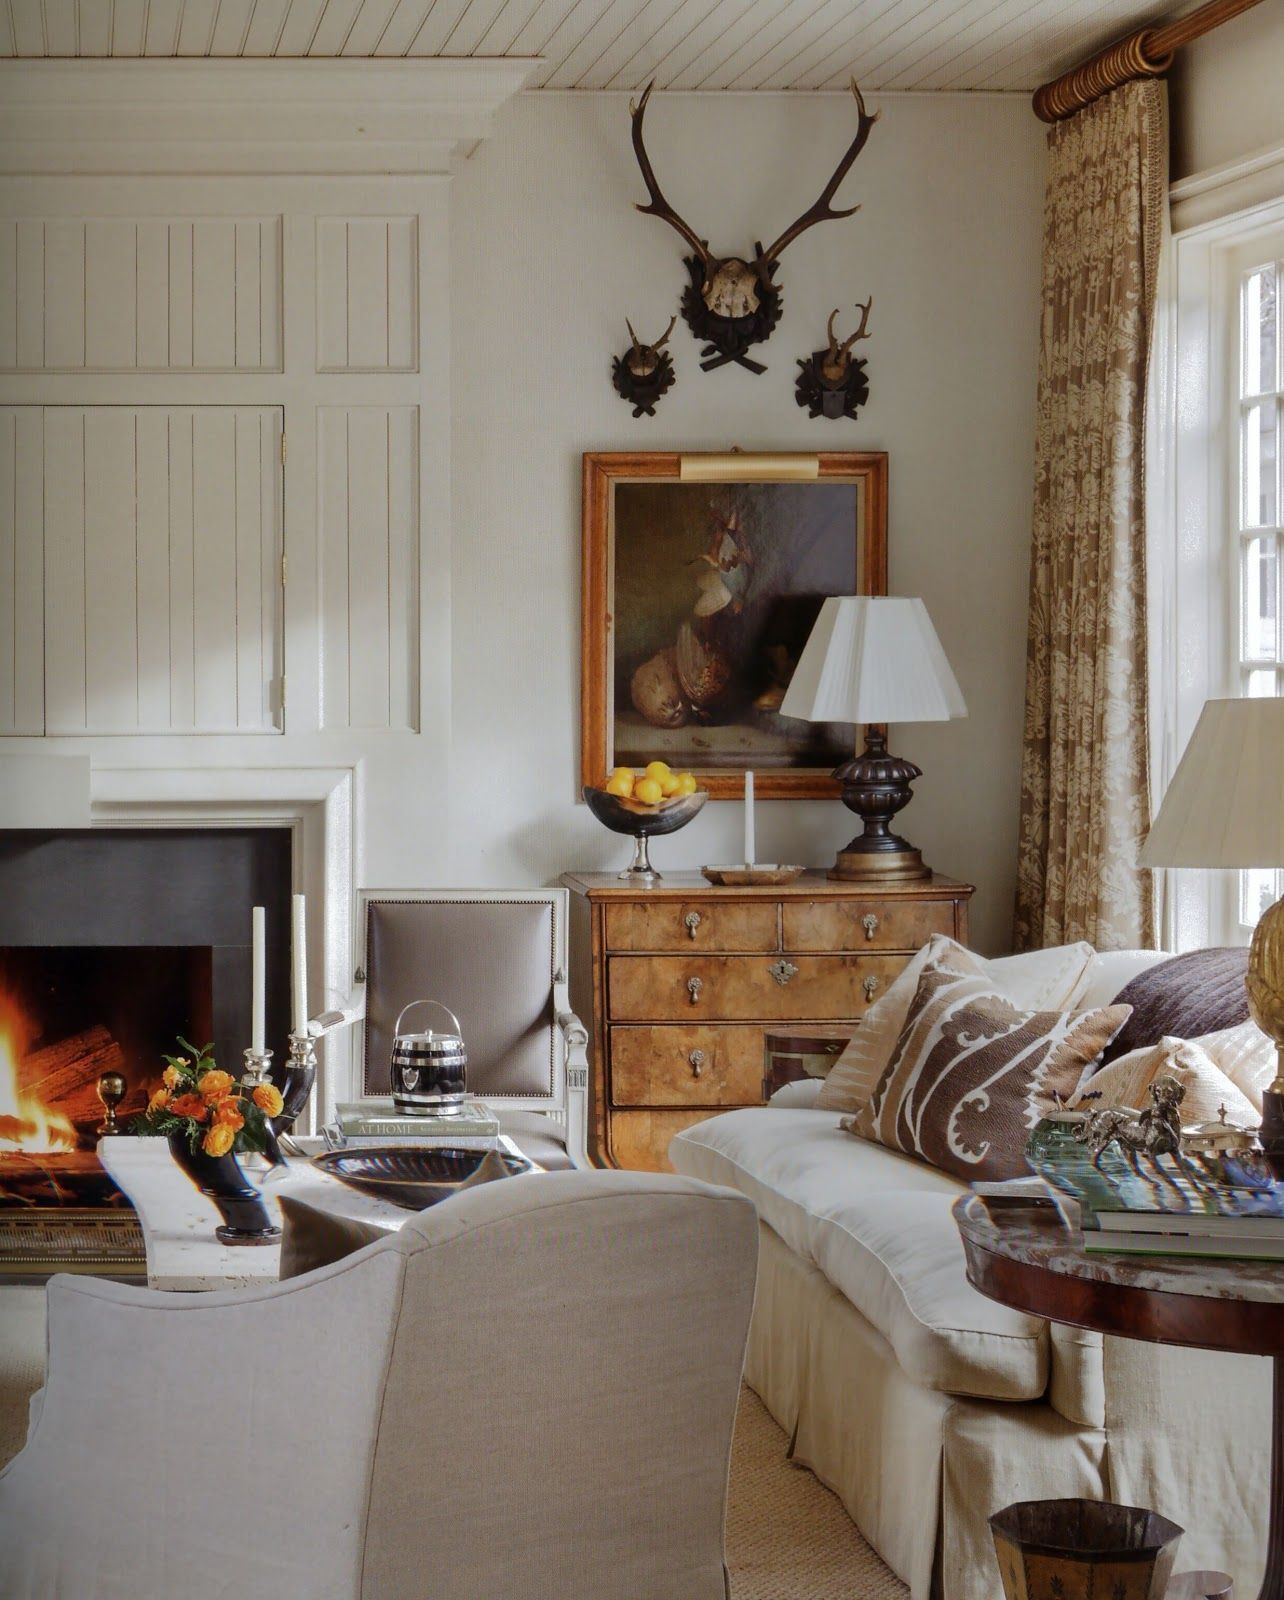 Interior Design Inspiration Photos By Laura Hay Decor Design: THE ART OF LIVING GRACIOUSLY By Jane